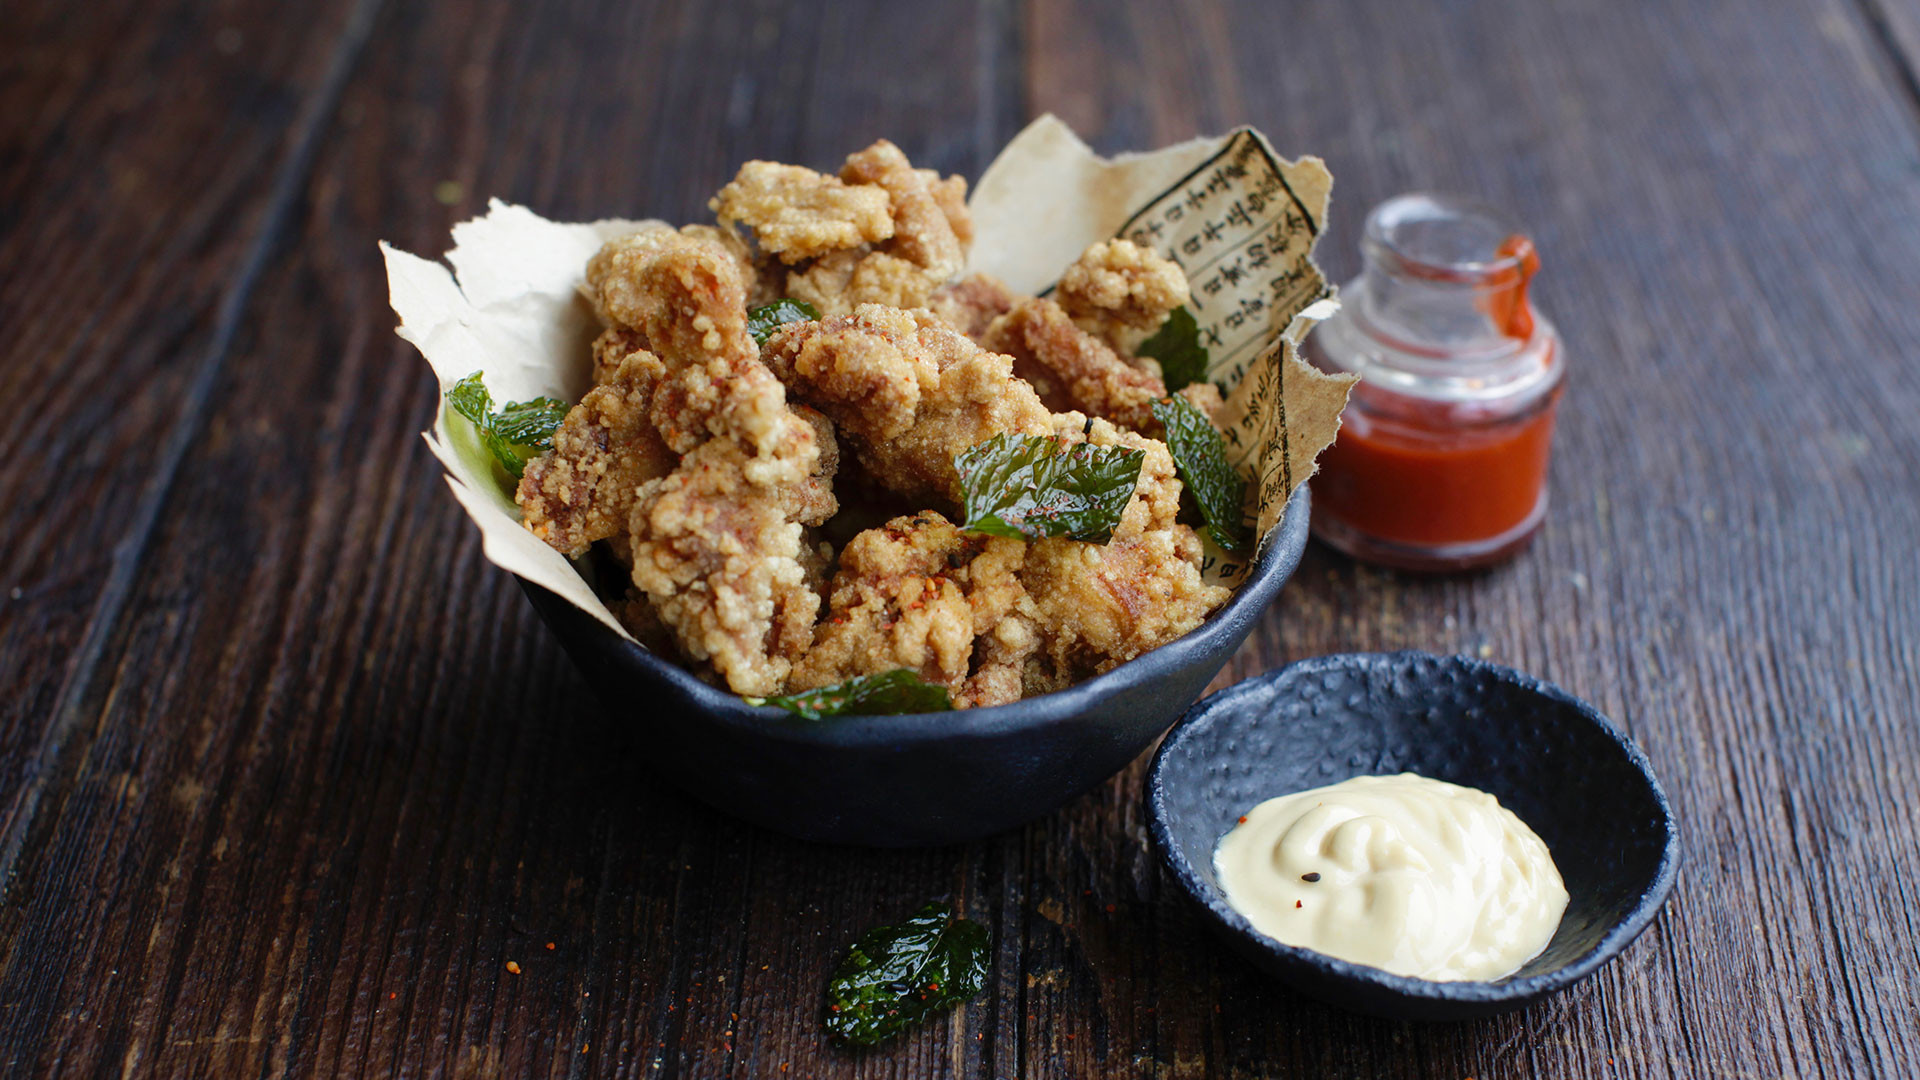 Fried chicken with smoked miso mayo